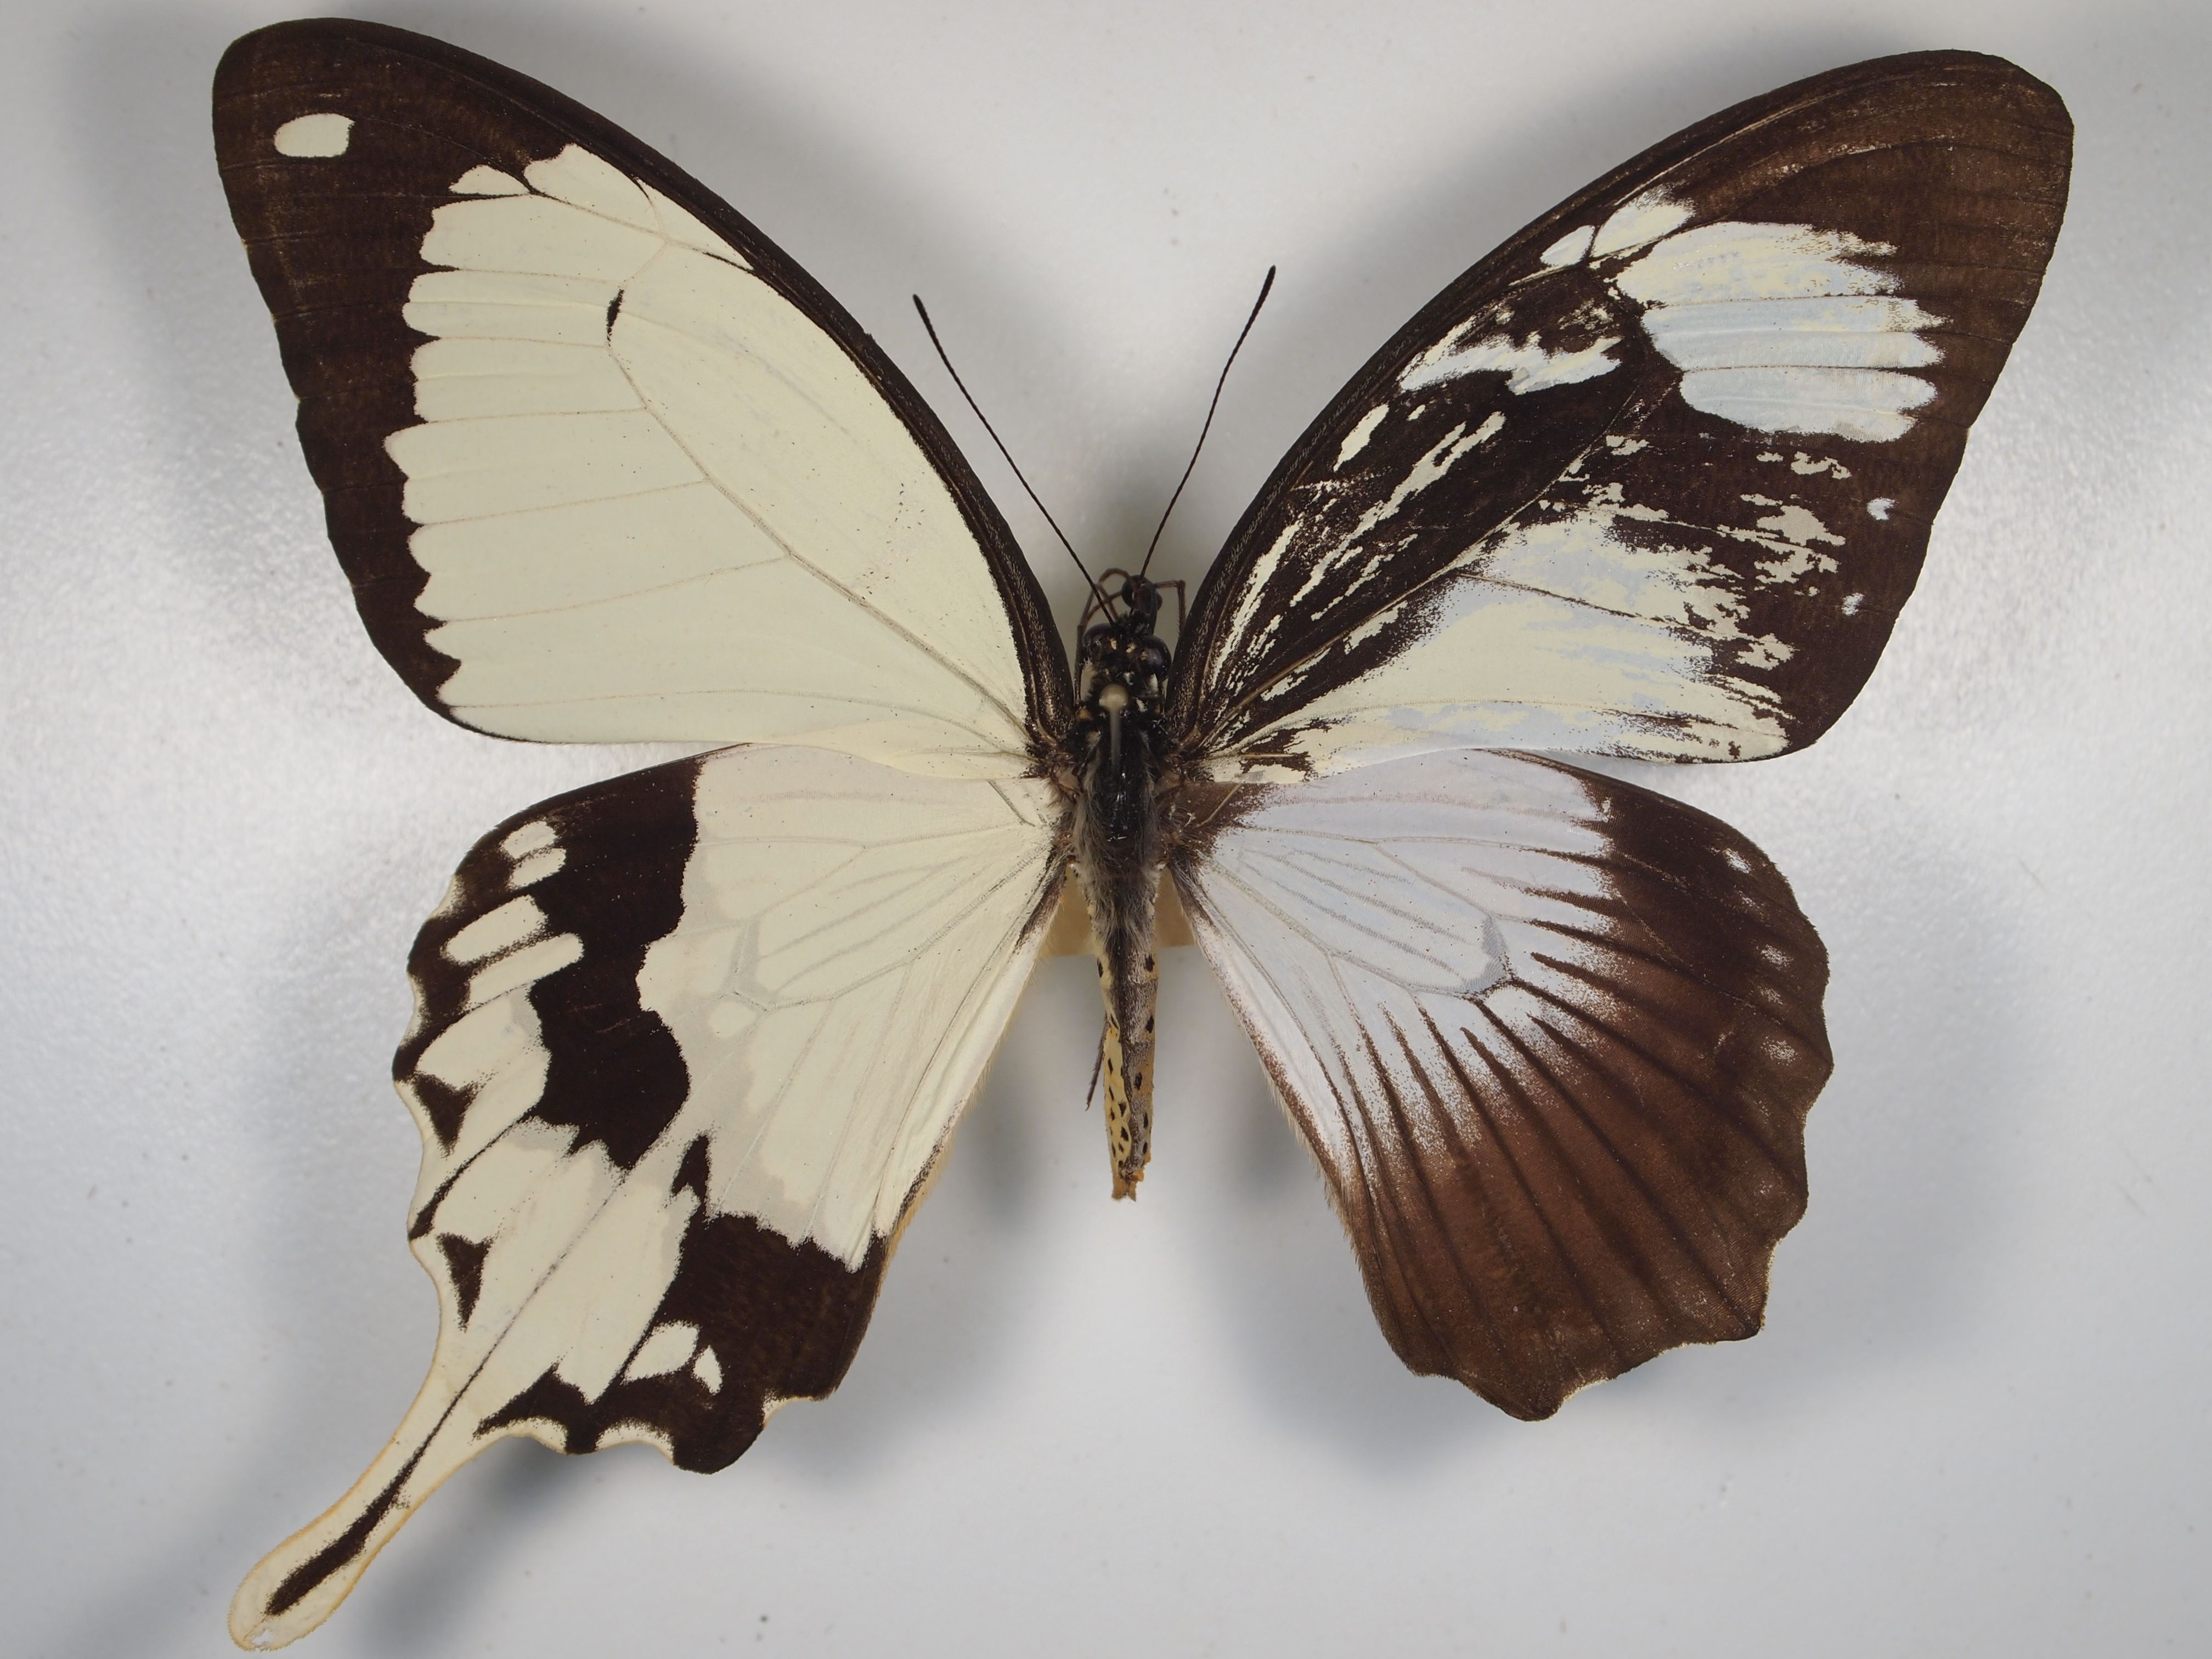 asymmetrical butterfly | Bilateral gynandromorph - right hand side mostly female pattern, left ...